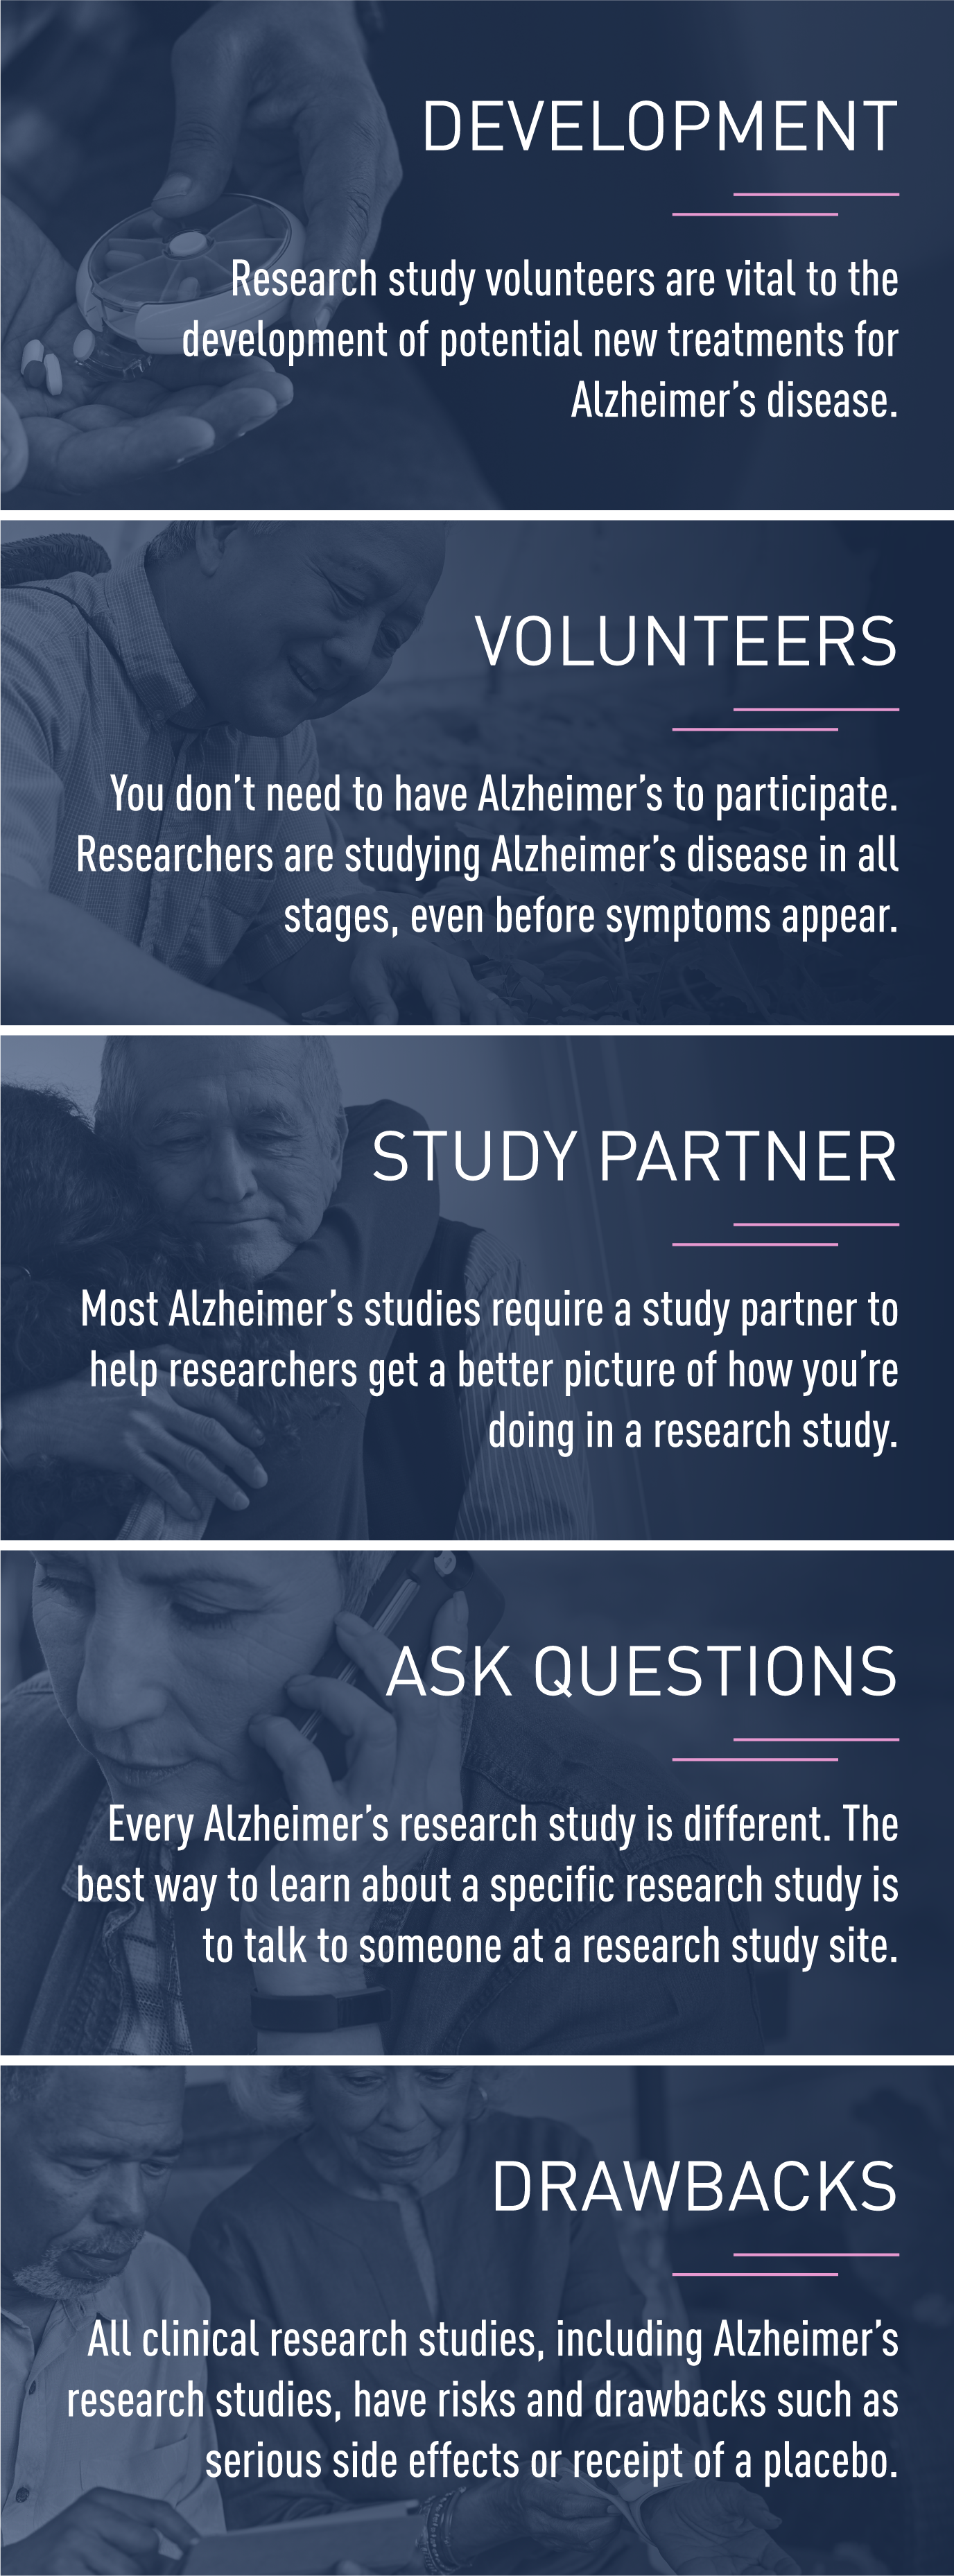 AlzheimersResearchParticipation5ThingstoKnow Infographic 14Jun2019-01